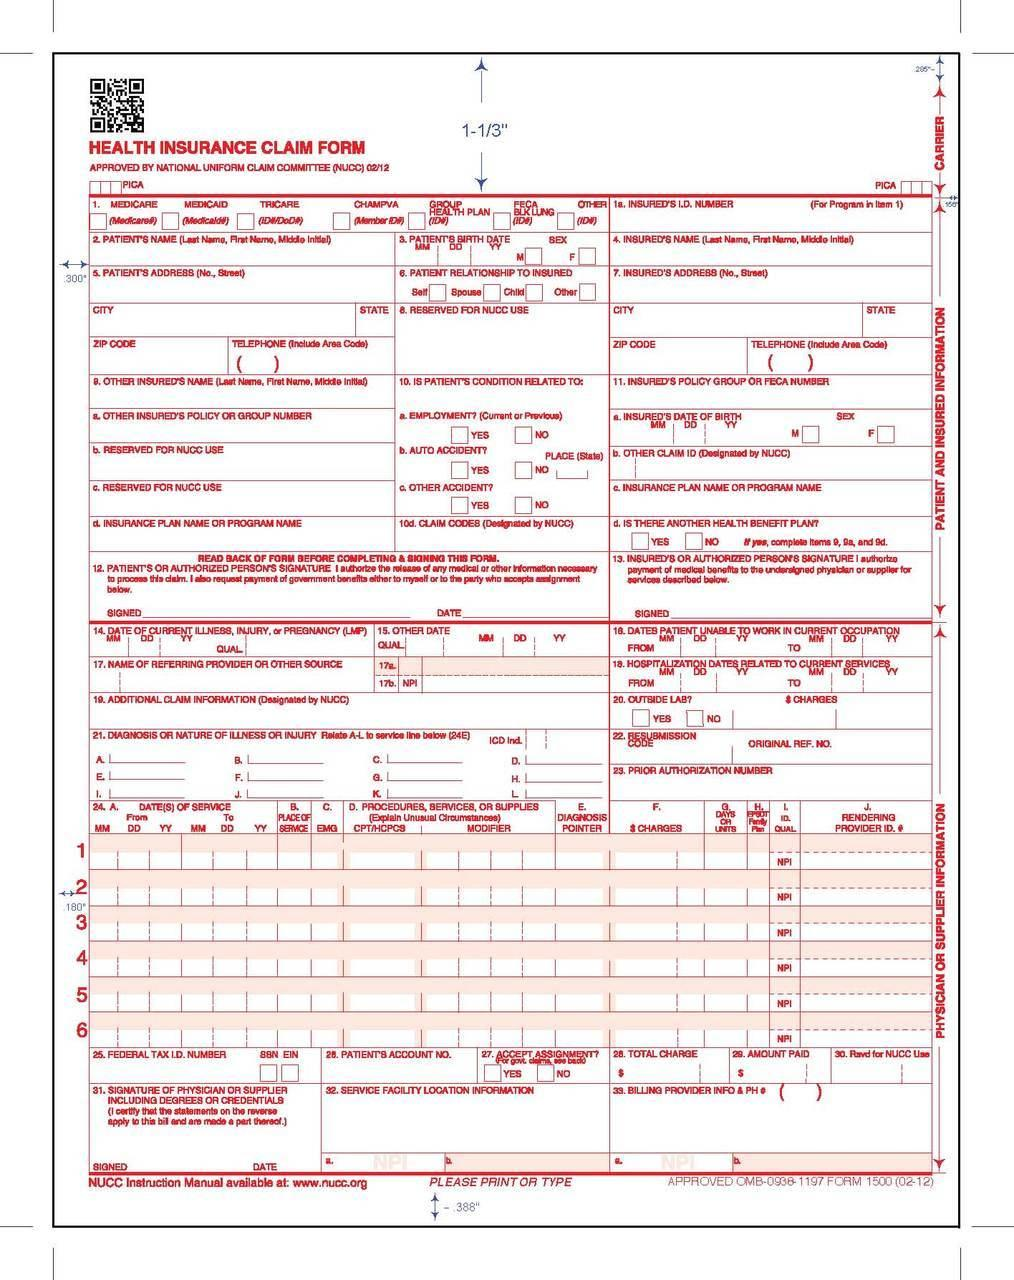 Do Cms 1500 Forms Have To Be Red